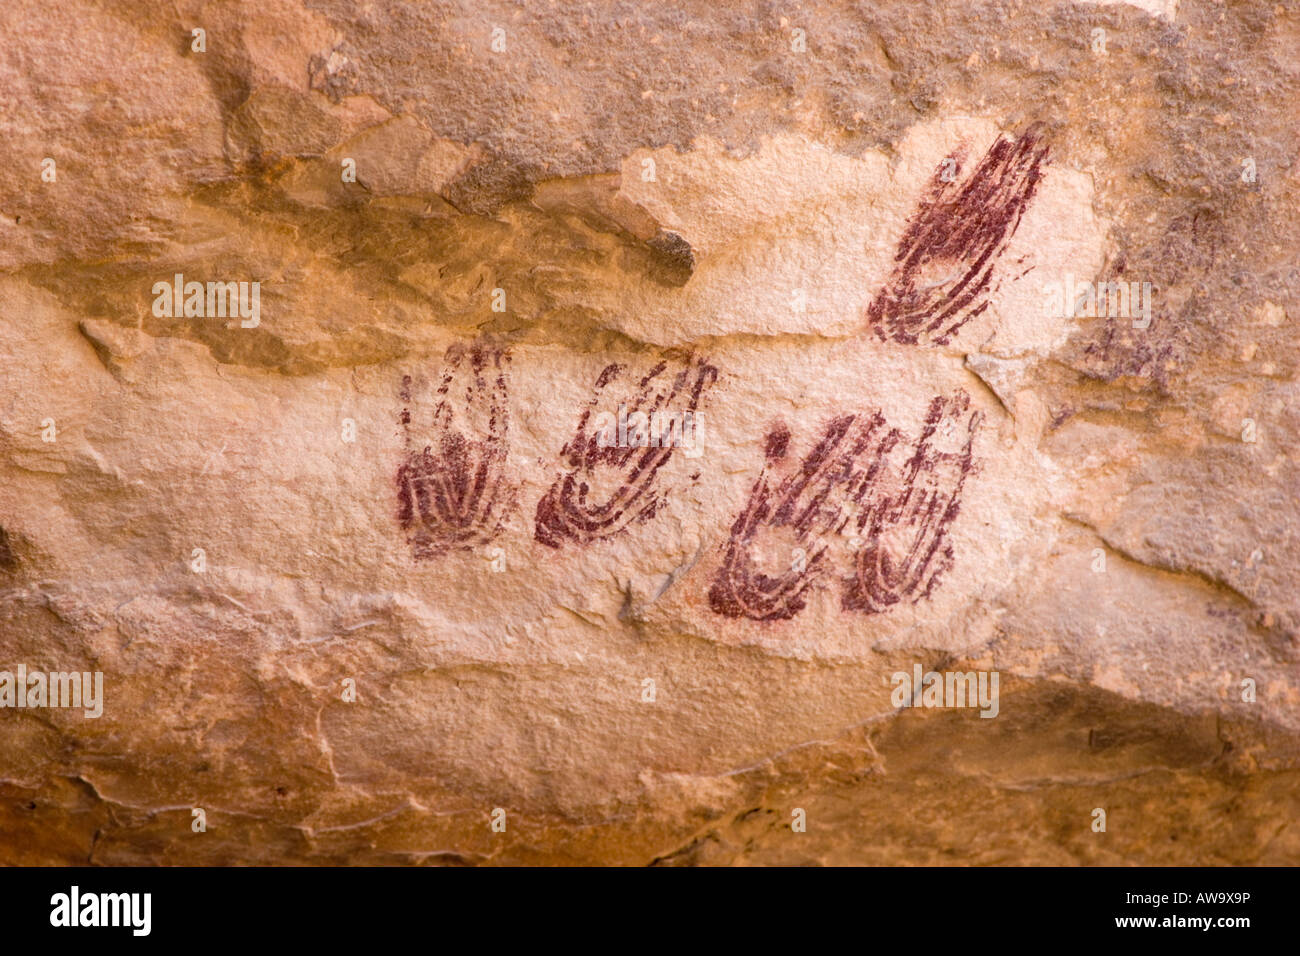 4000 year old hands - Stock Image